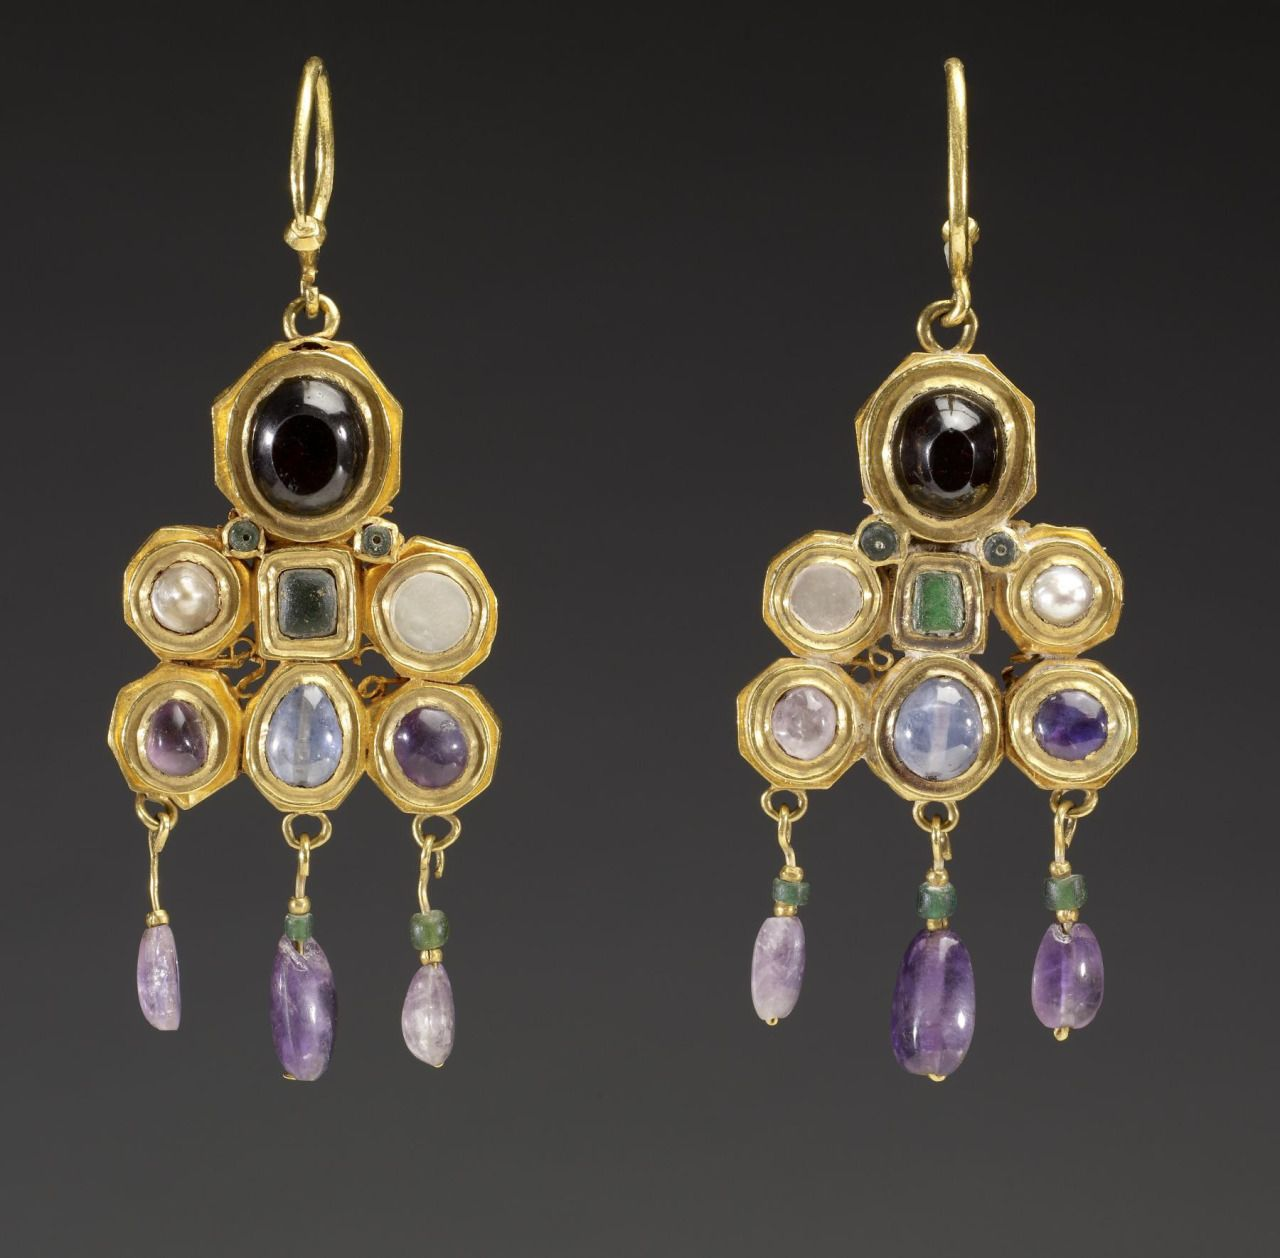 Byzantine Earrings C 600